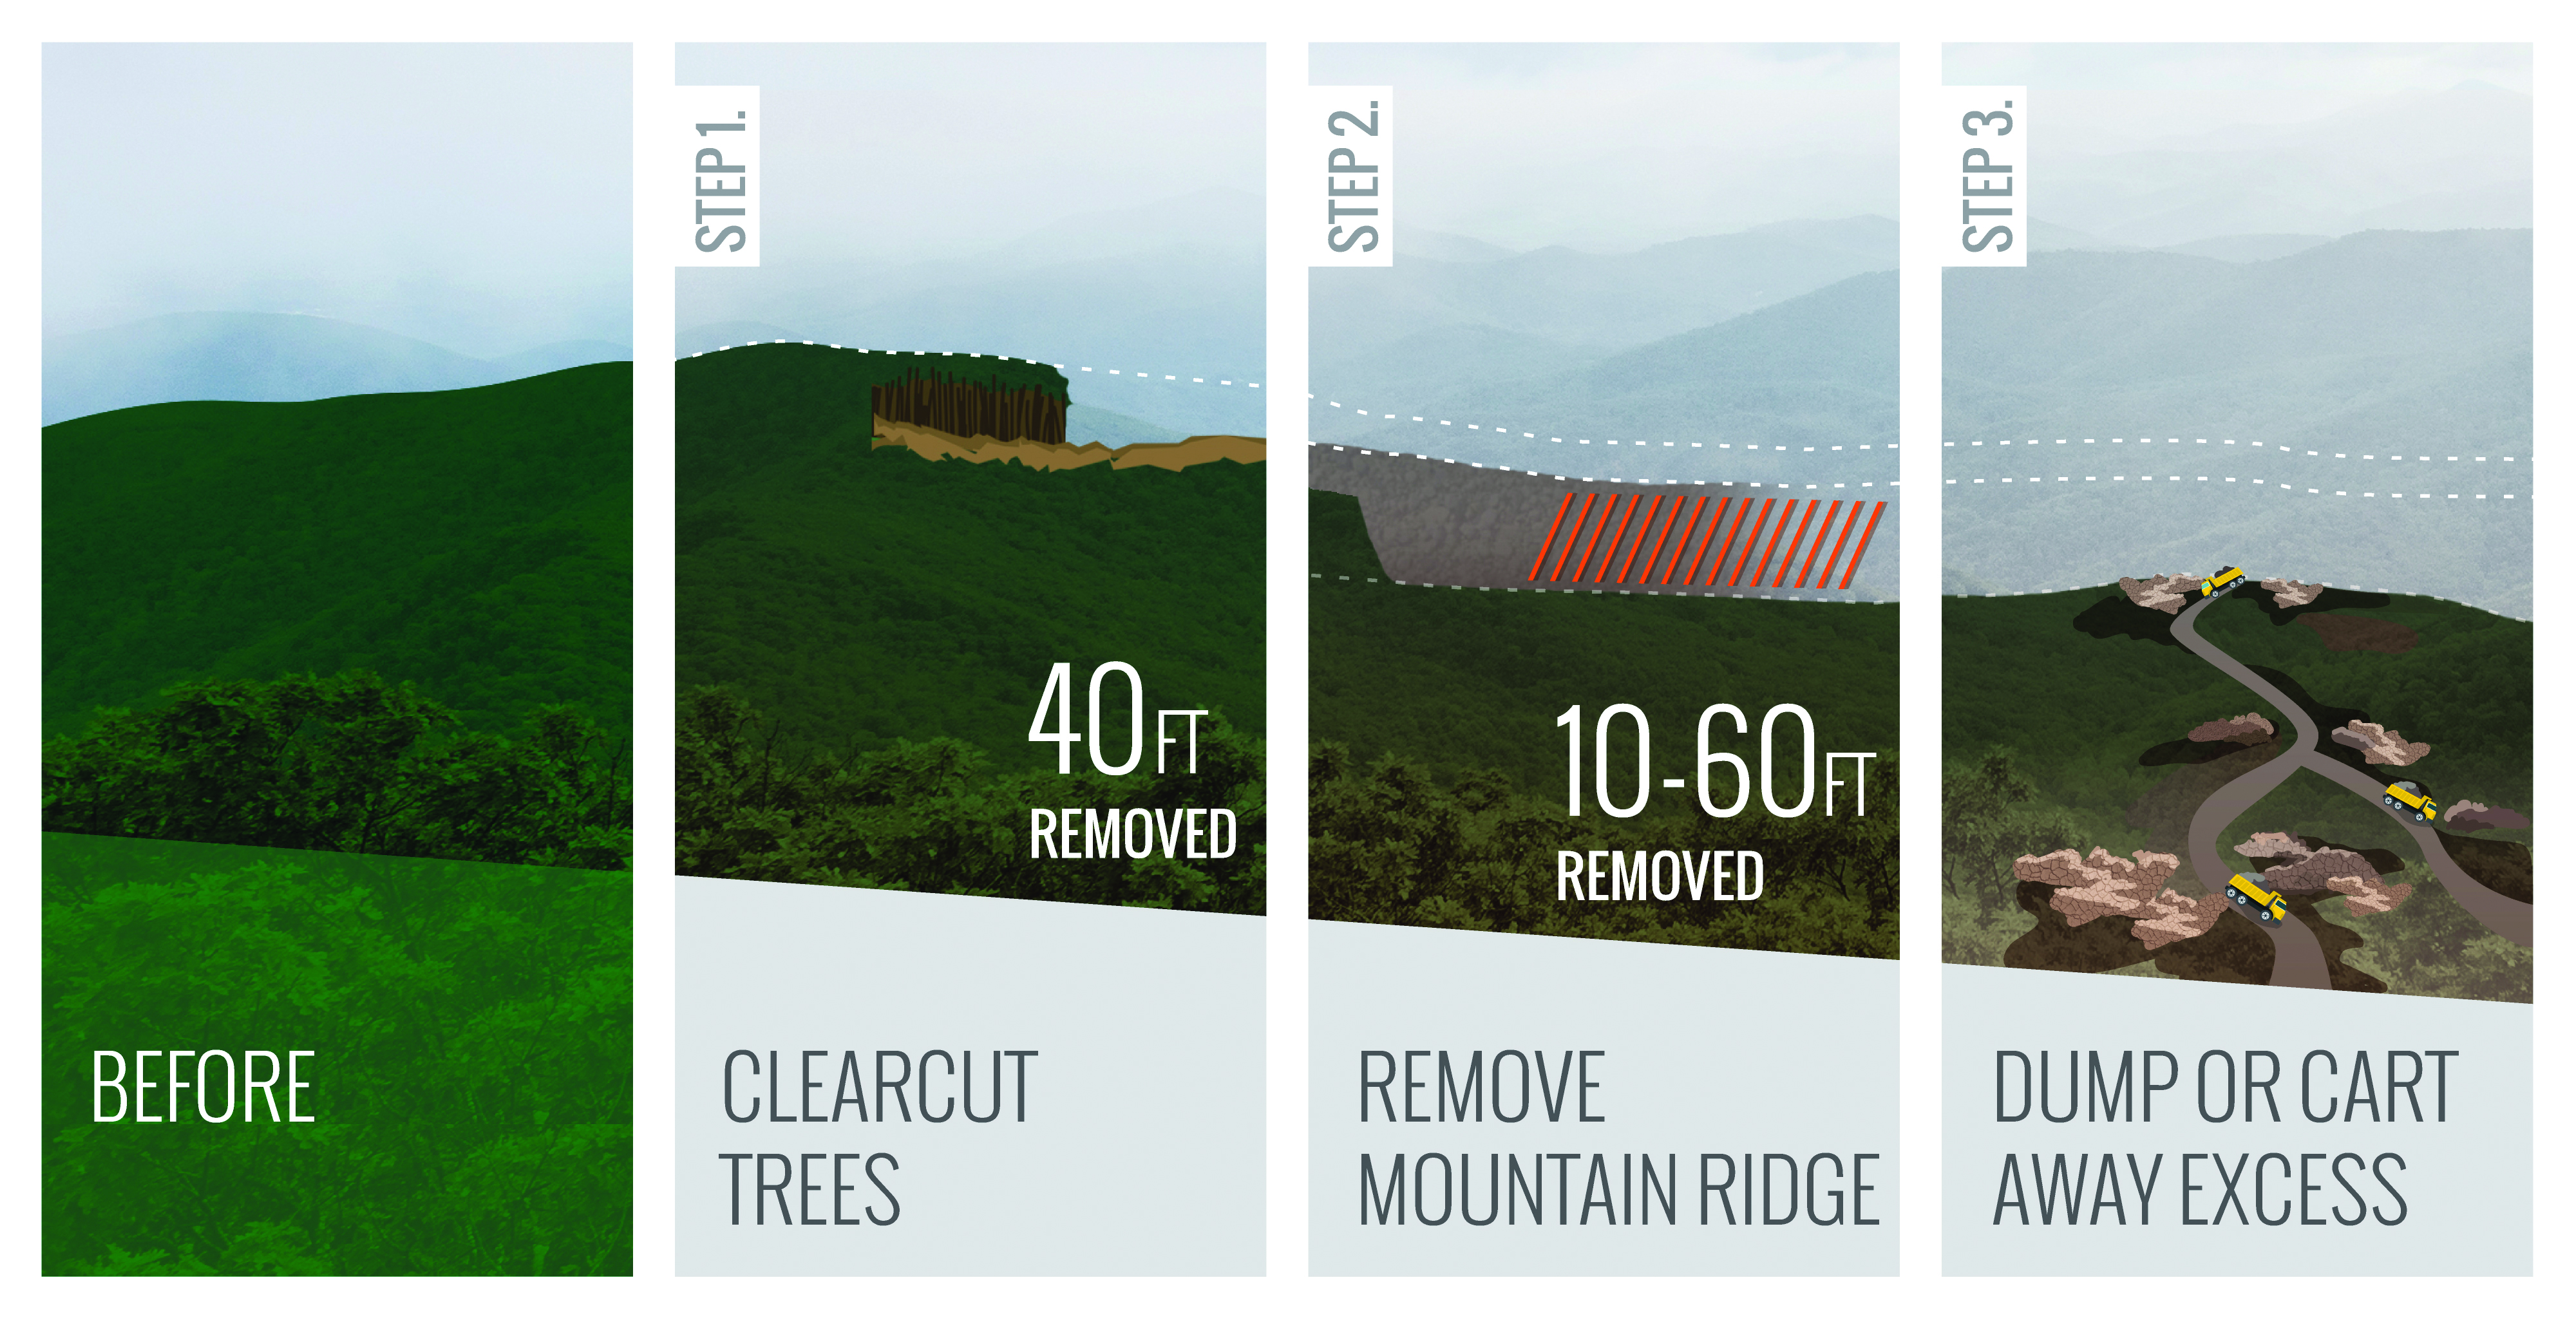 The Atlantic Coast Pipeline would require up to 60 feet of mountaintop removal.